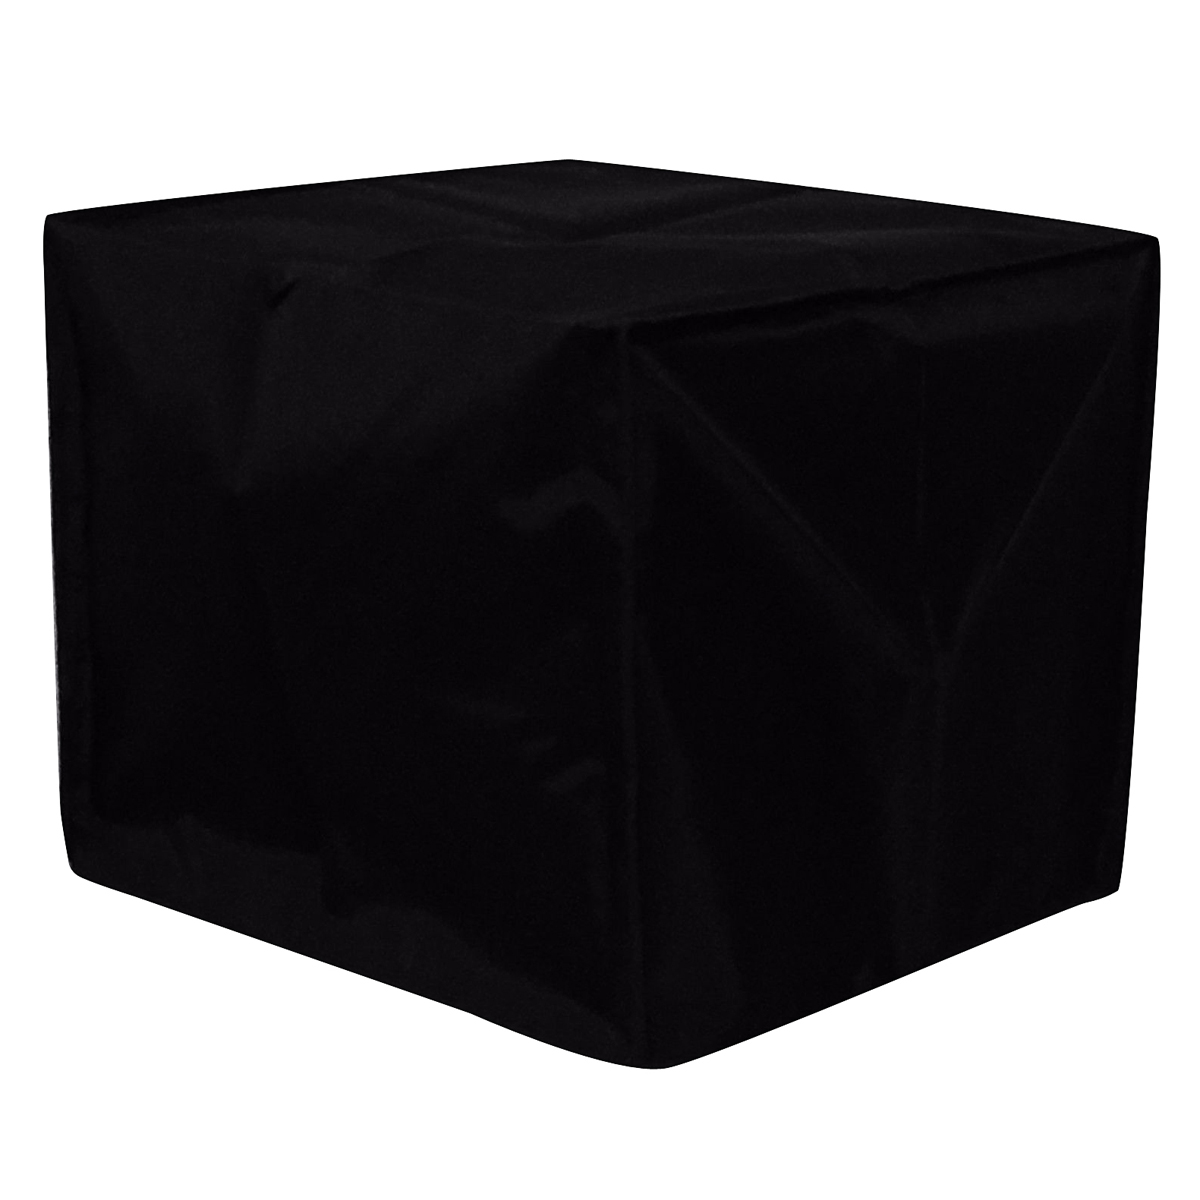 43*43*32cm Black Nylon Dust Cover For 3D Printer